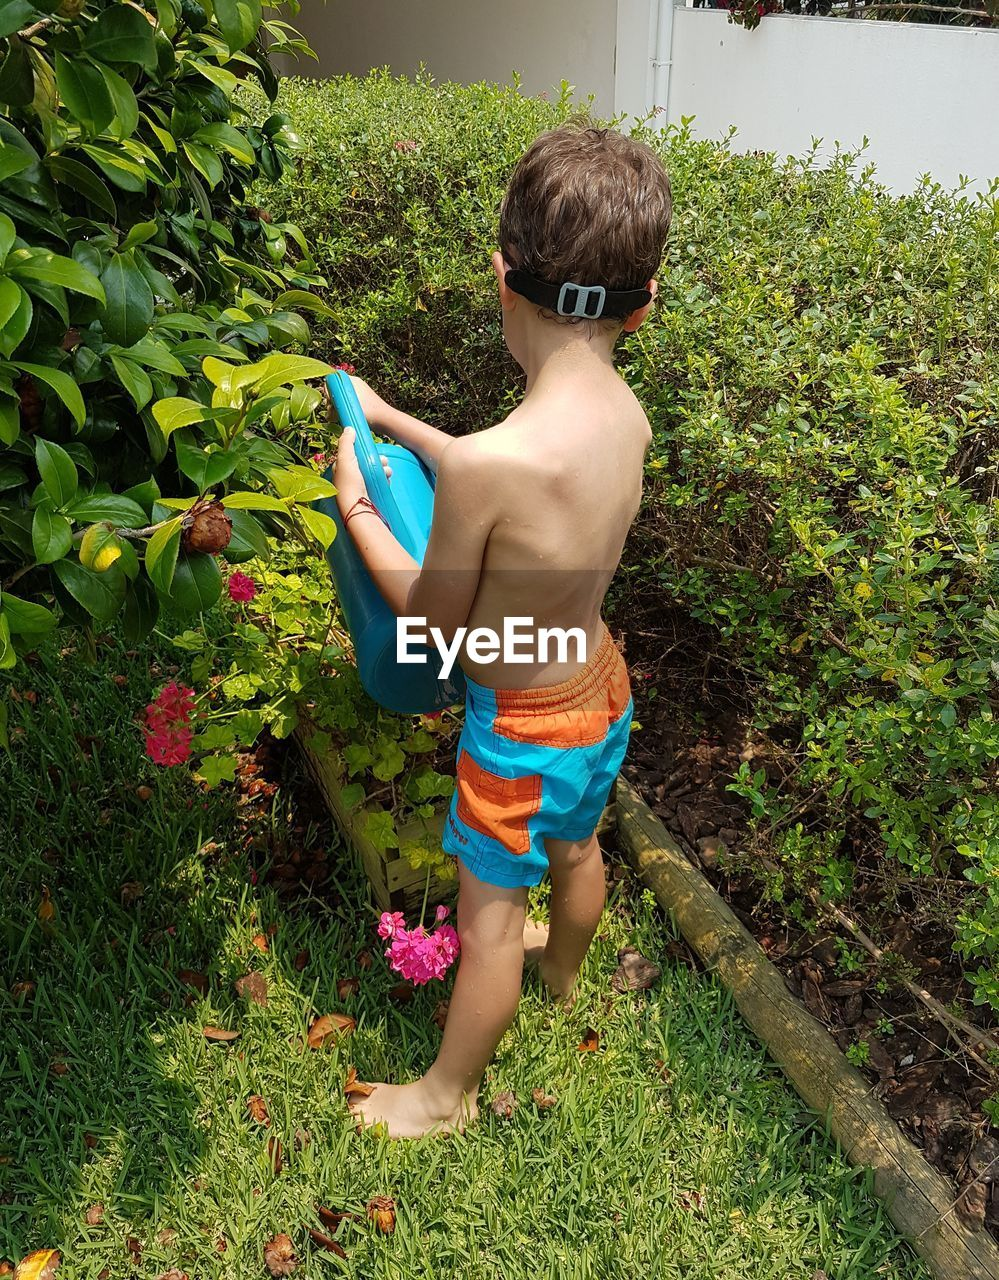 BOY PLAYING IN WATER AT YARD